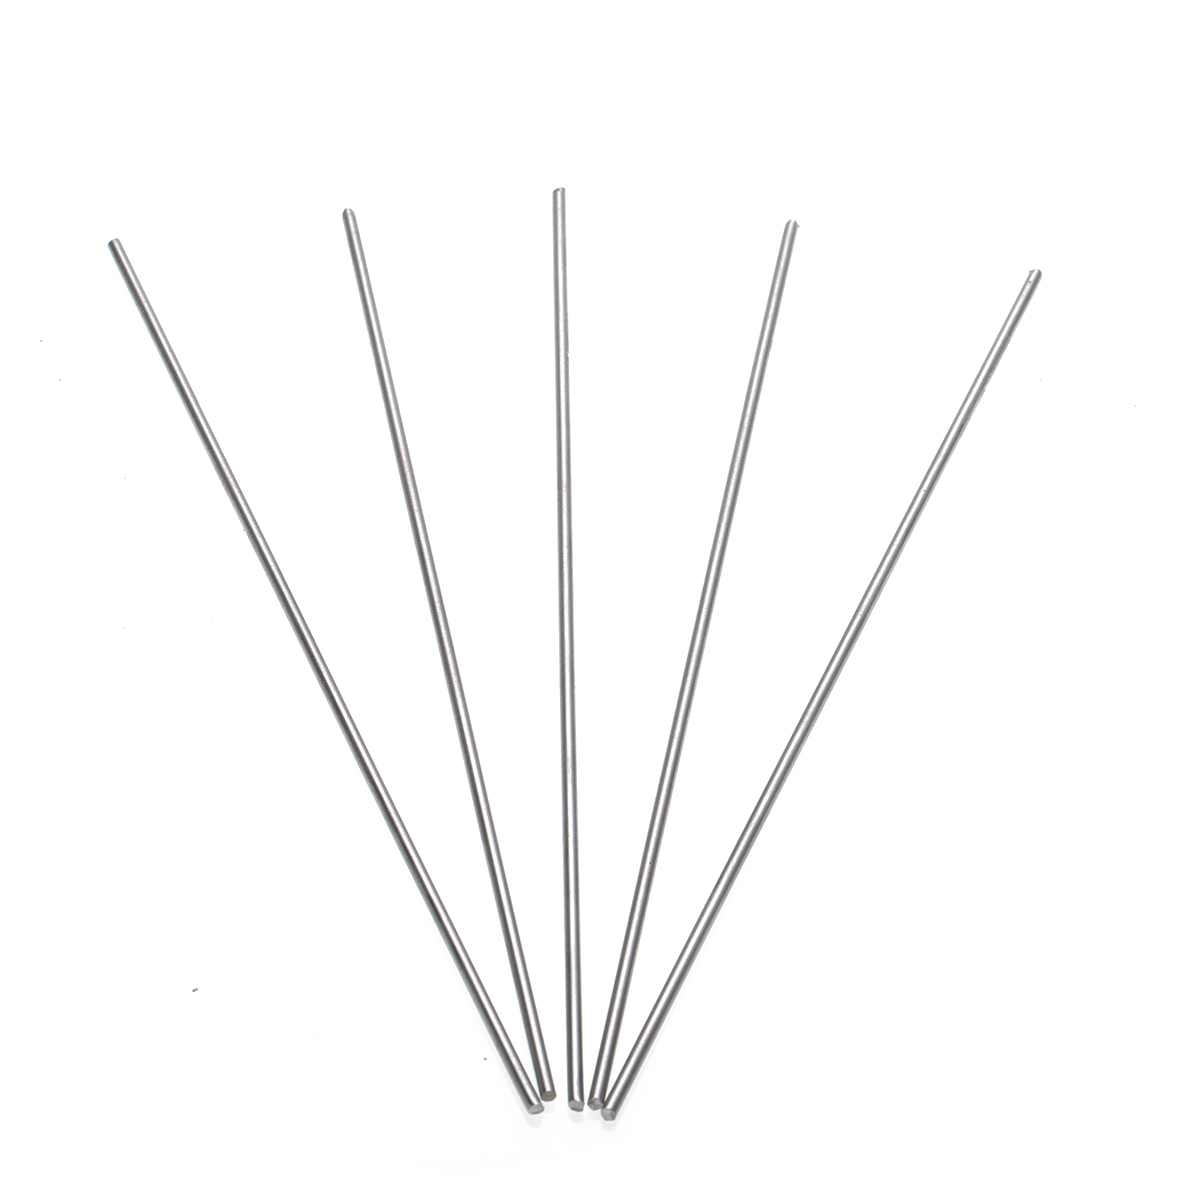 5pcs Grade 5 GR5 Titanium Ti Rods Stick Bar Shaft 3mm Diameter 25cm Length For Industries Tools